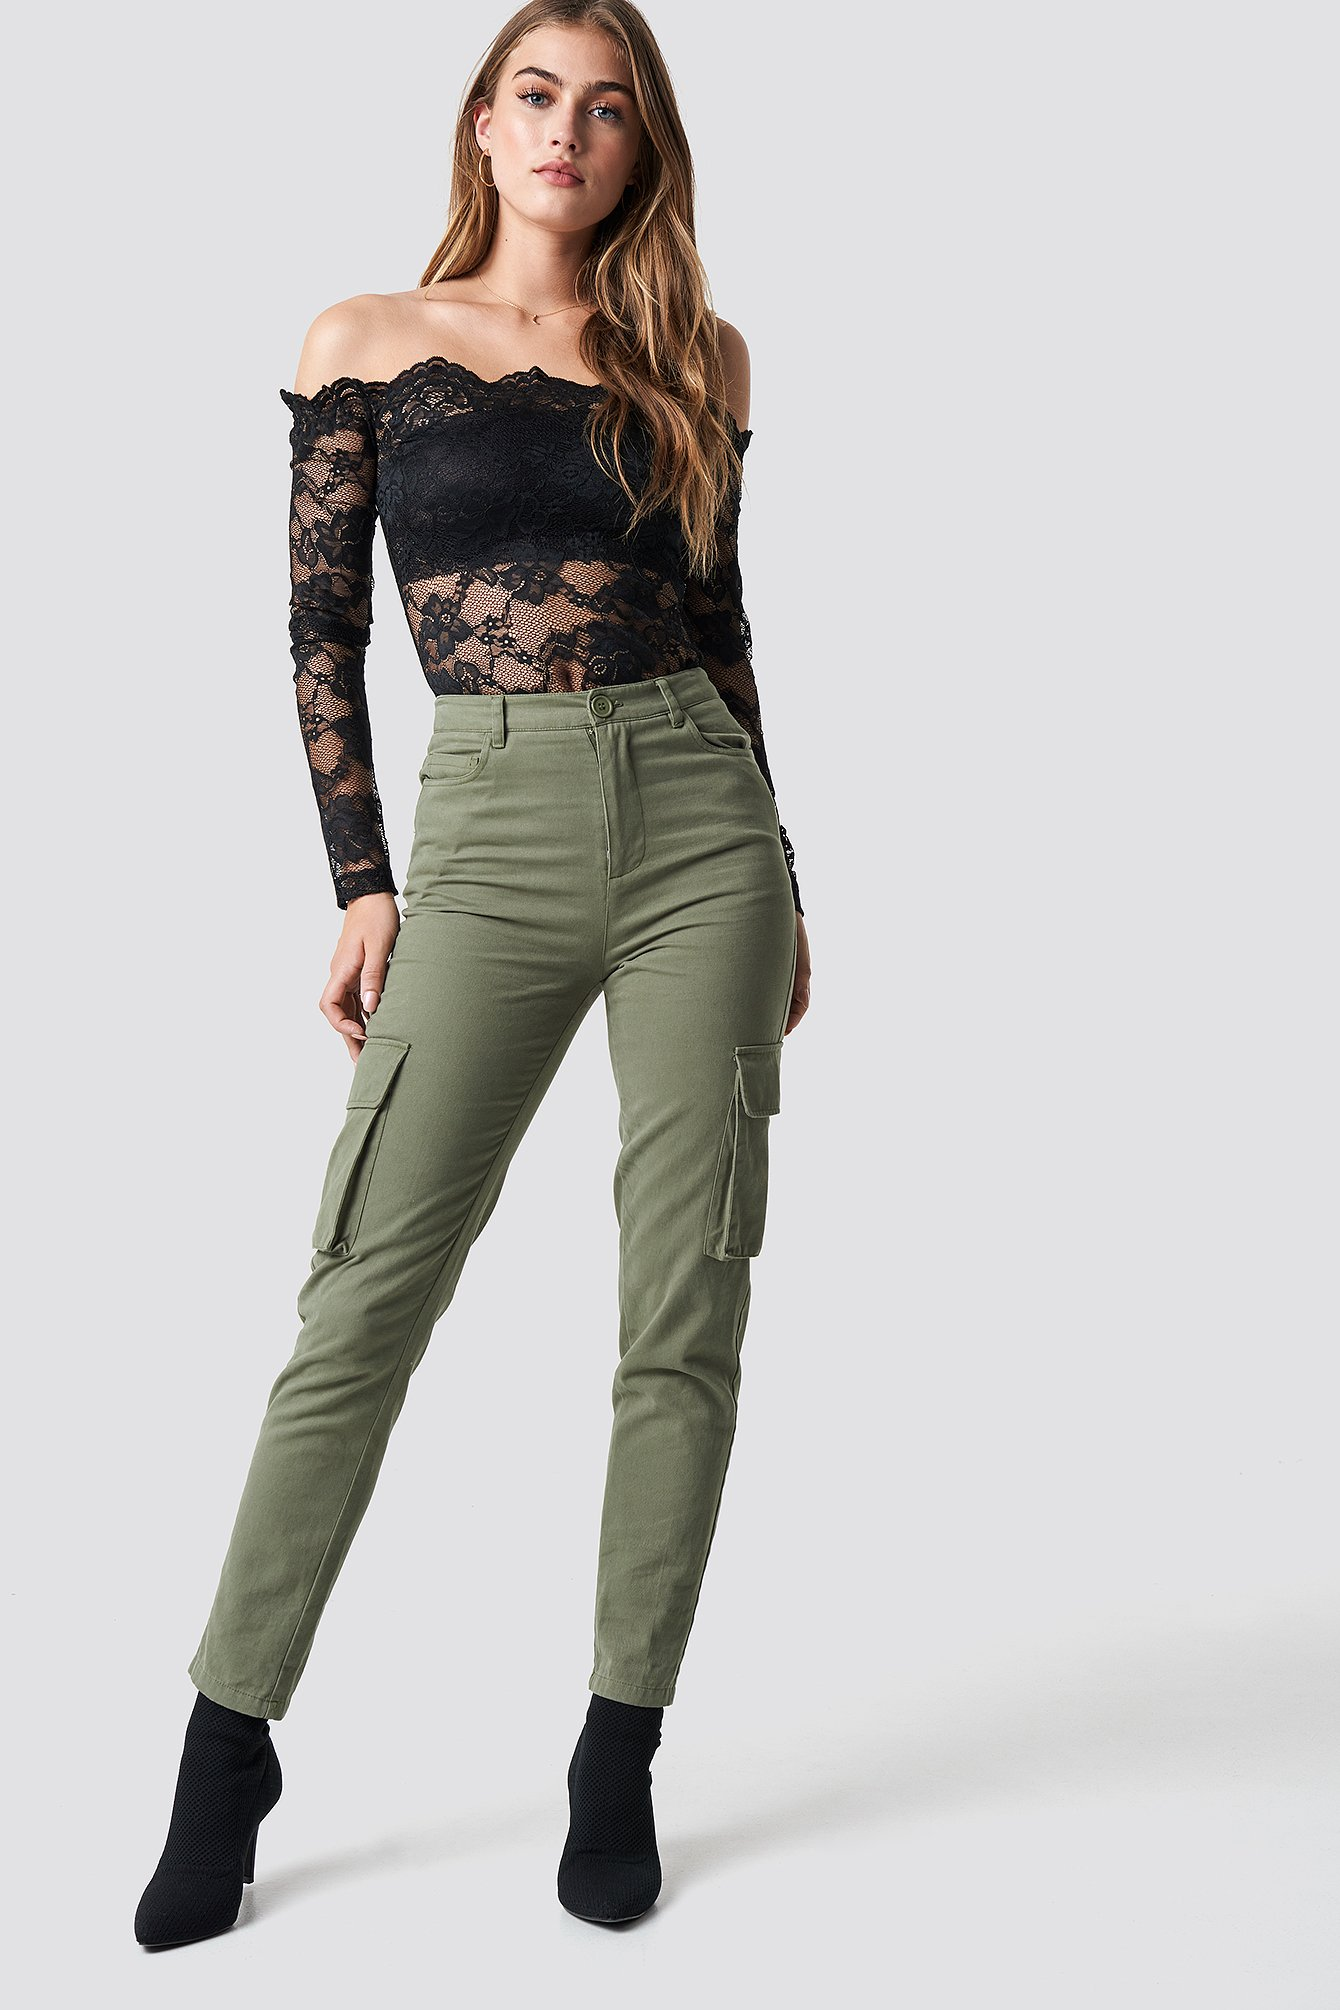 High Waist Slim Army Pants Grøn by Pamelaxnakd